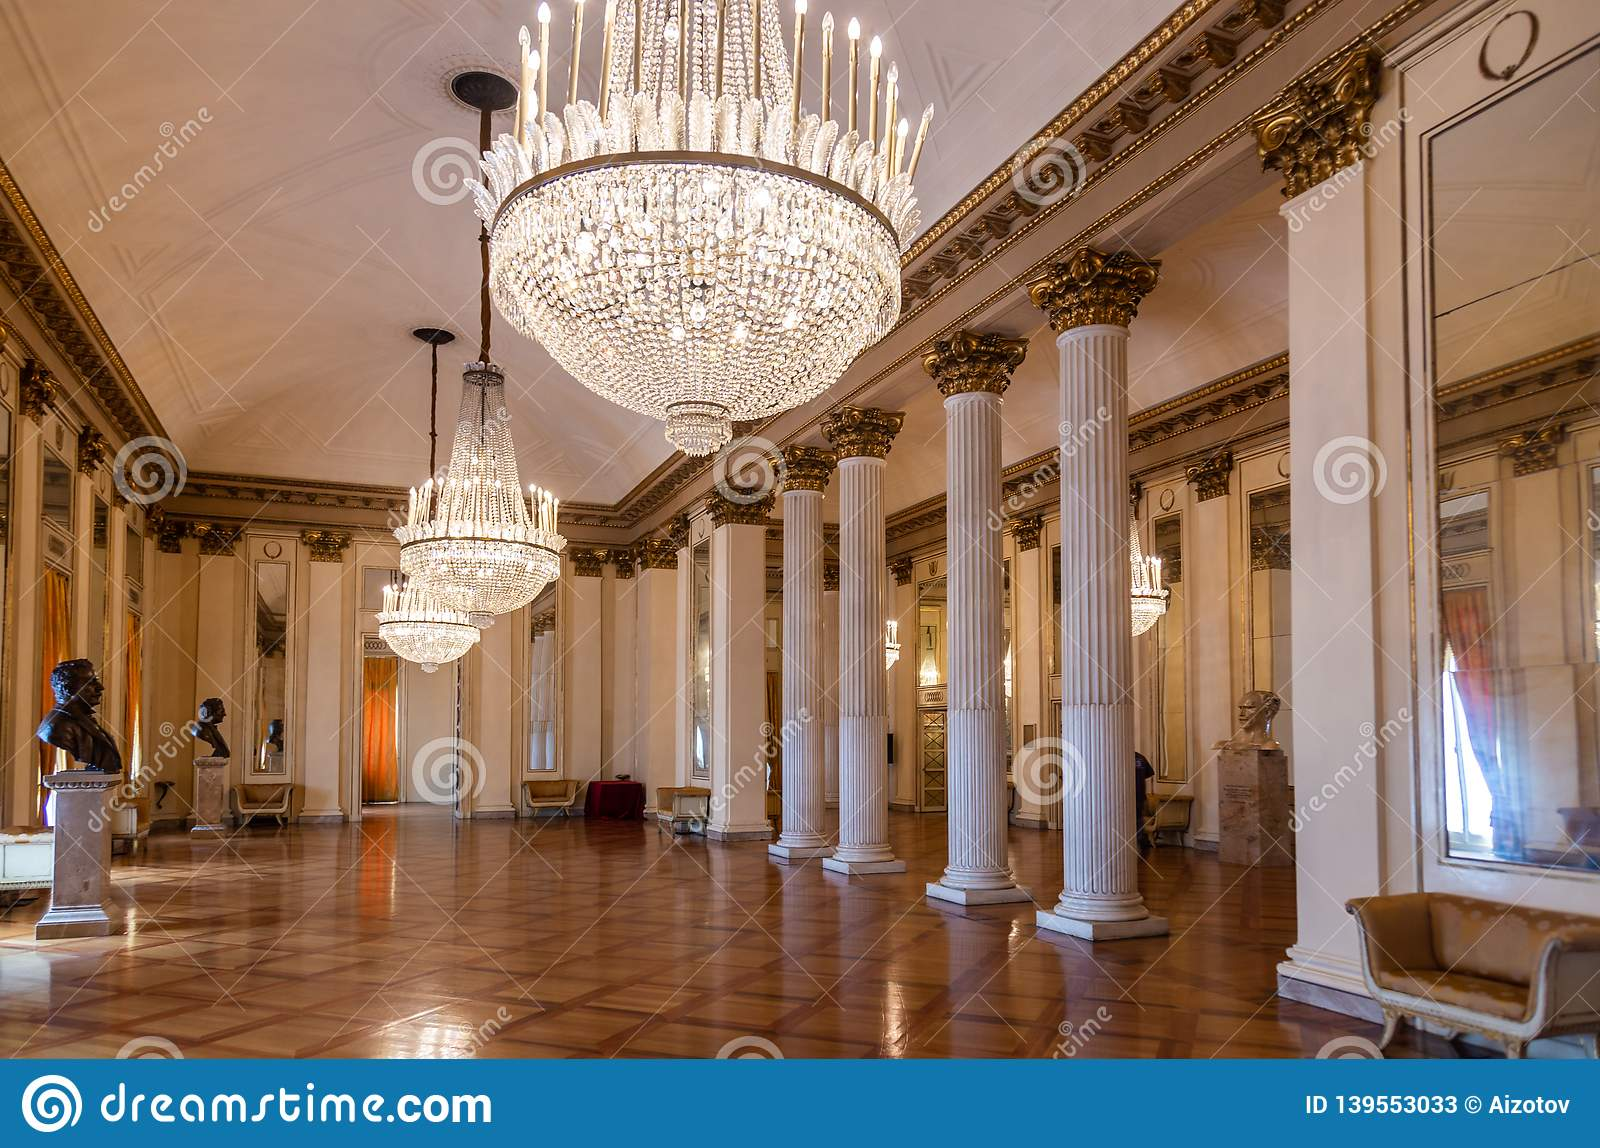 The lobby of the Milan Opera Theater La Scala with beautiful chandeliers and celebrity busts